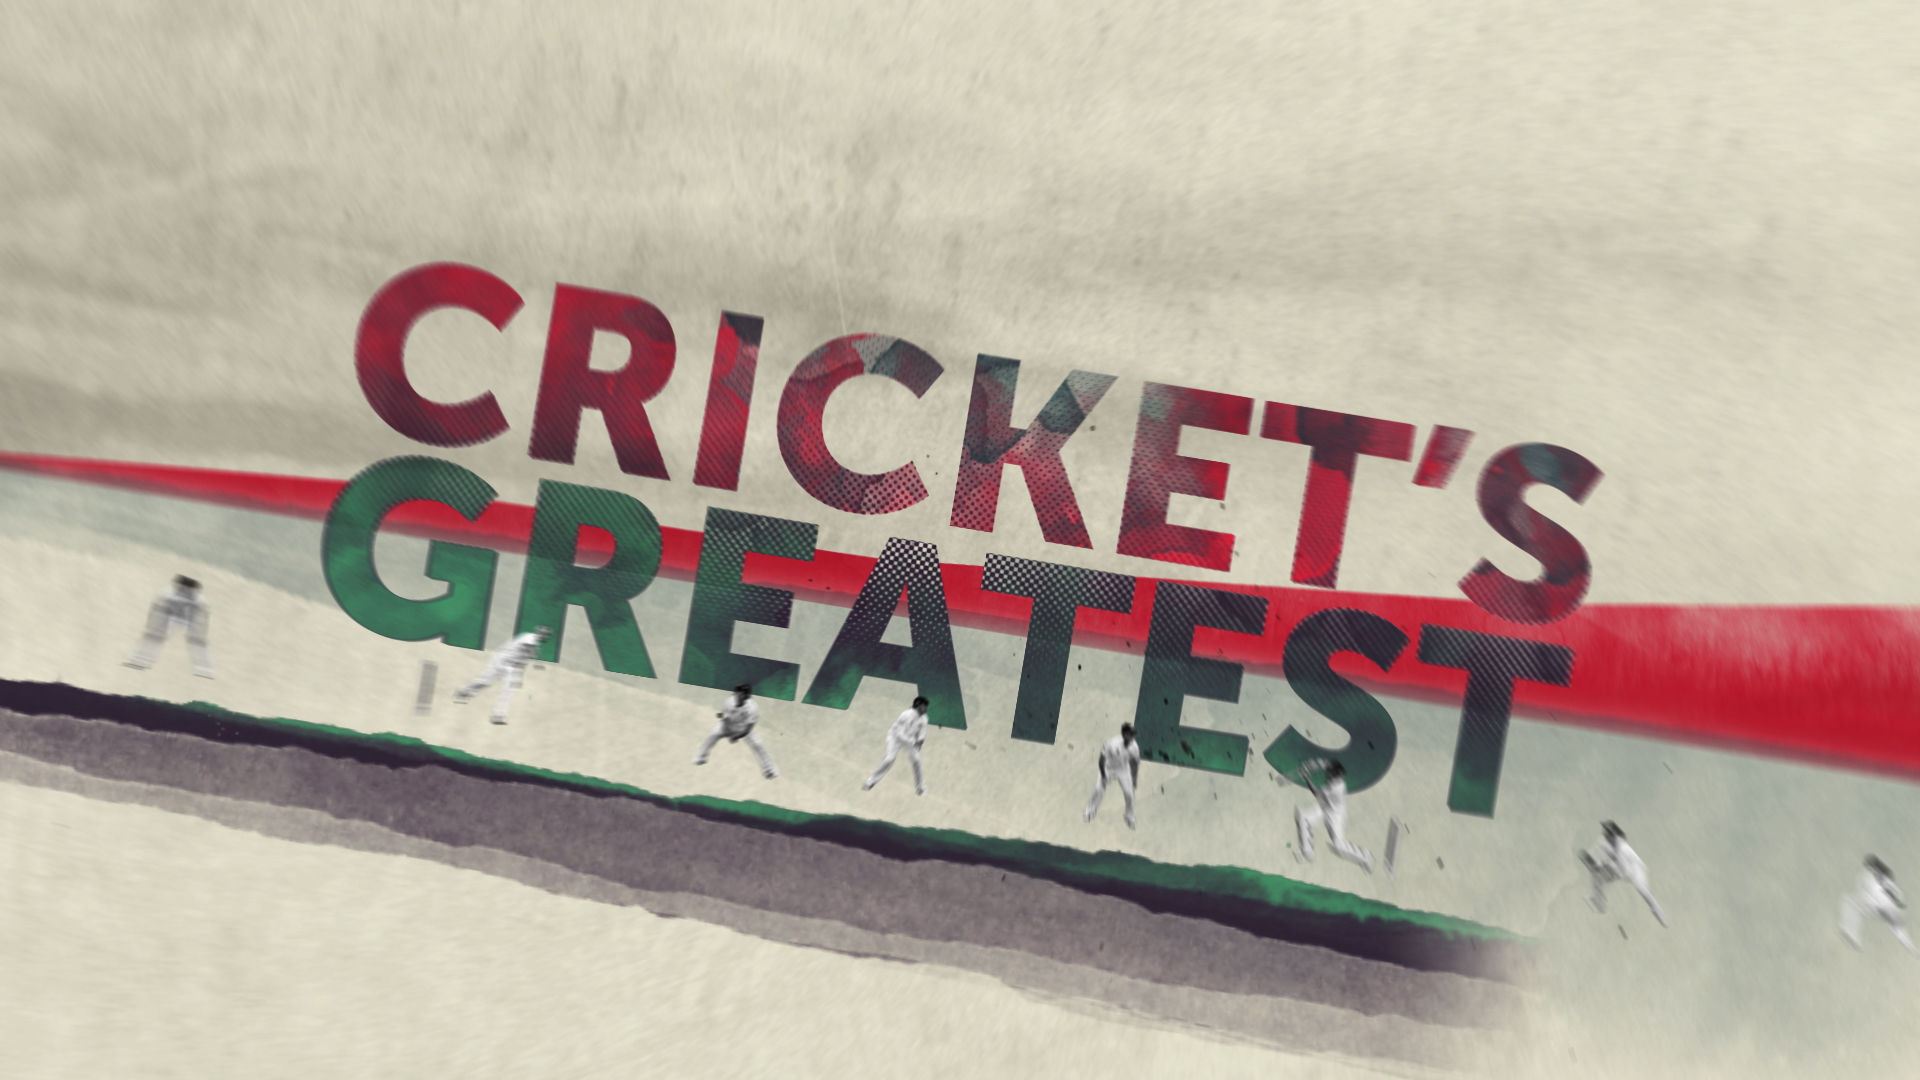 CRICKETS GREATEST